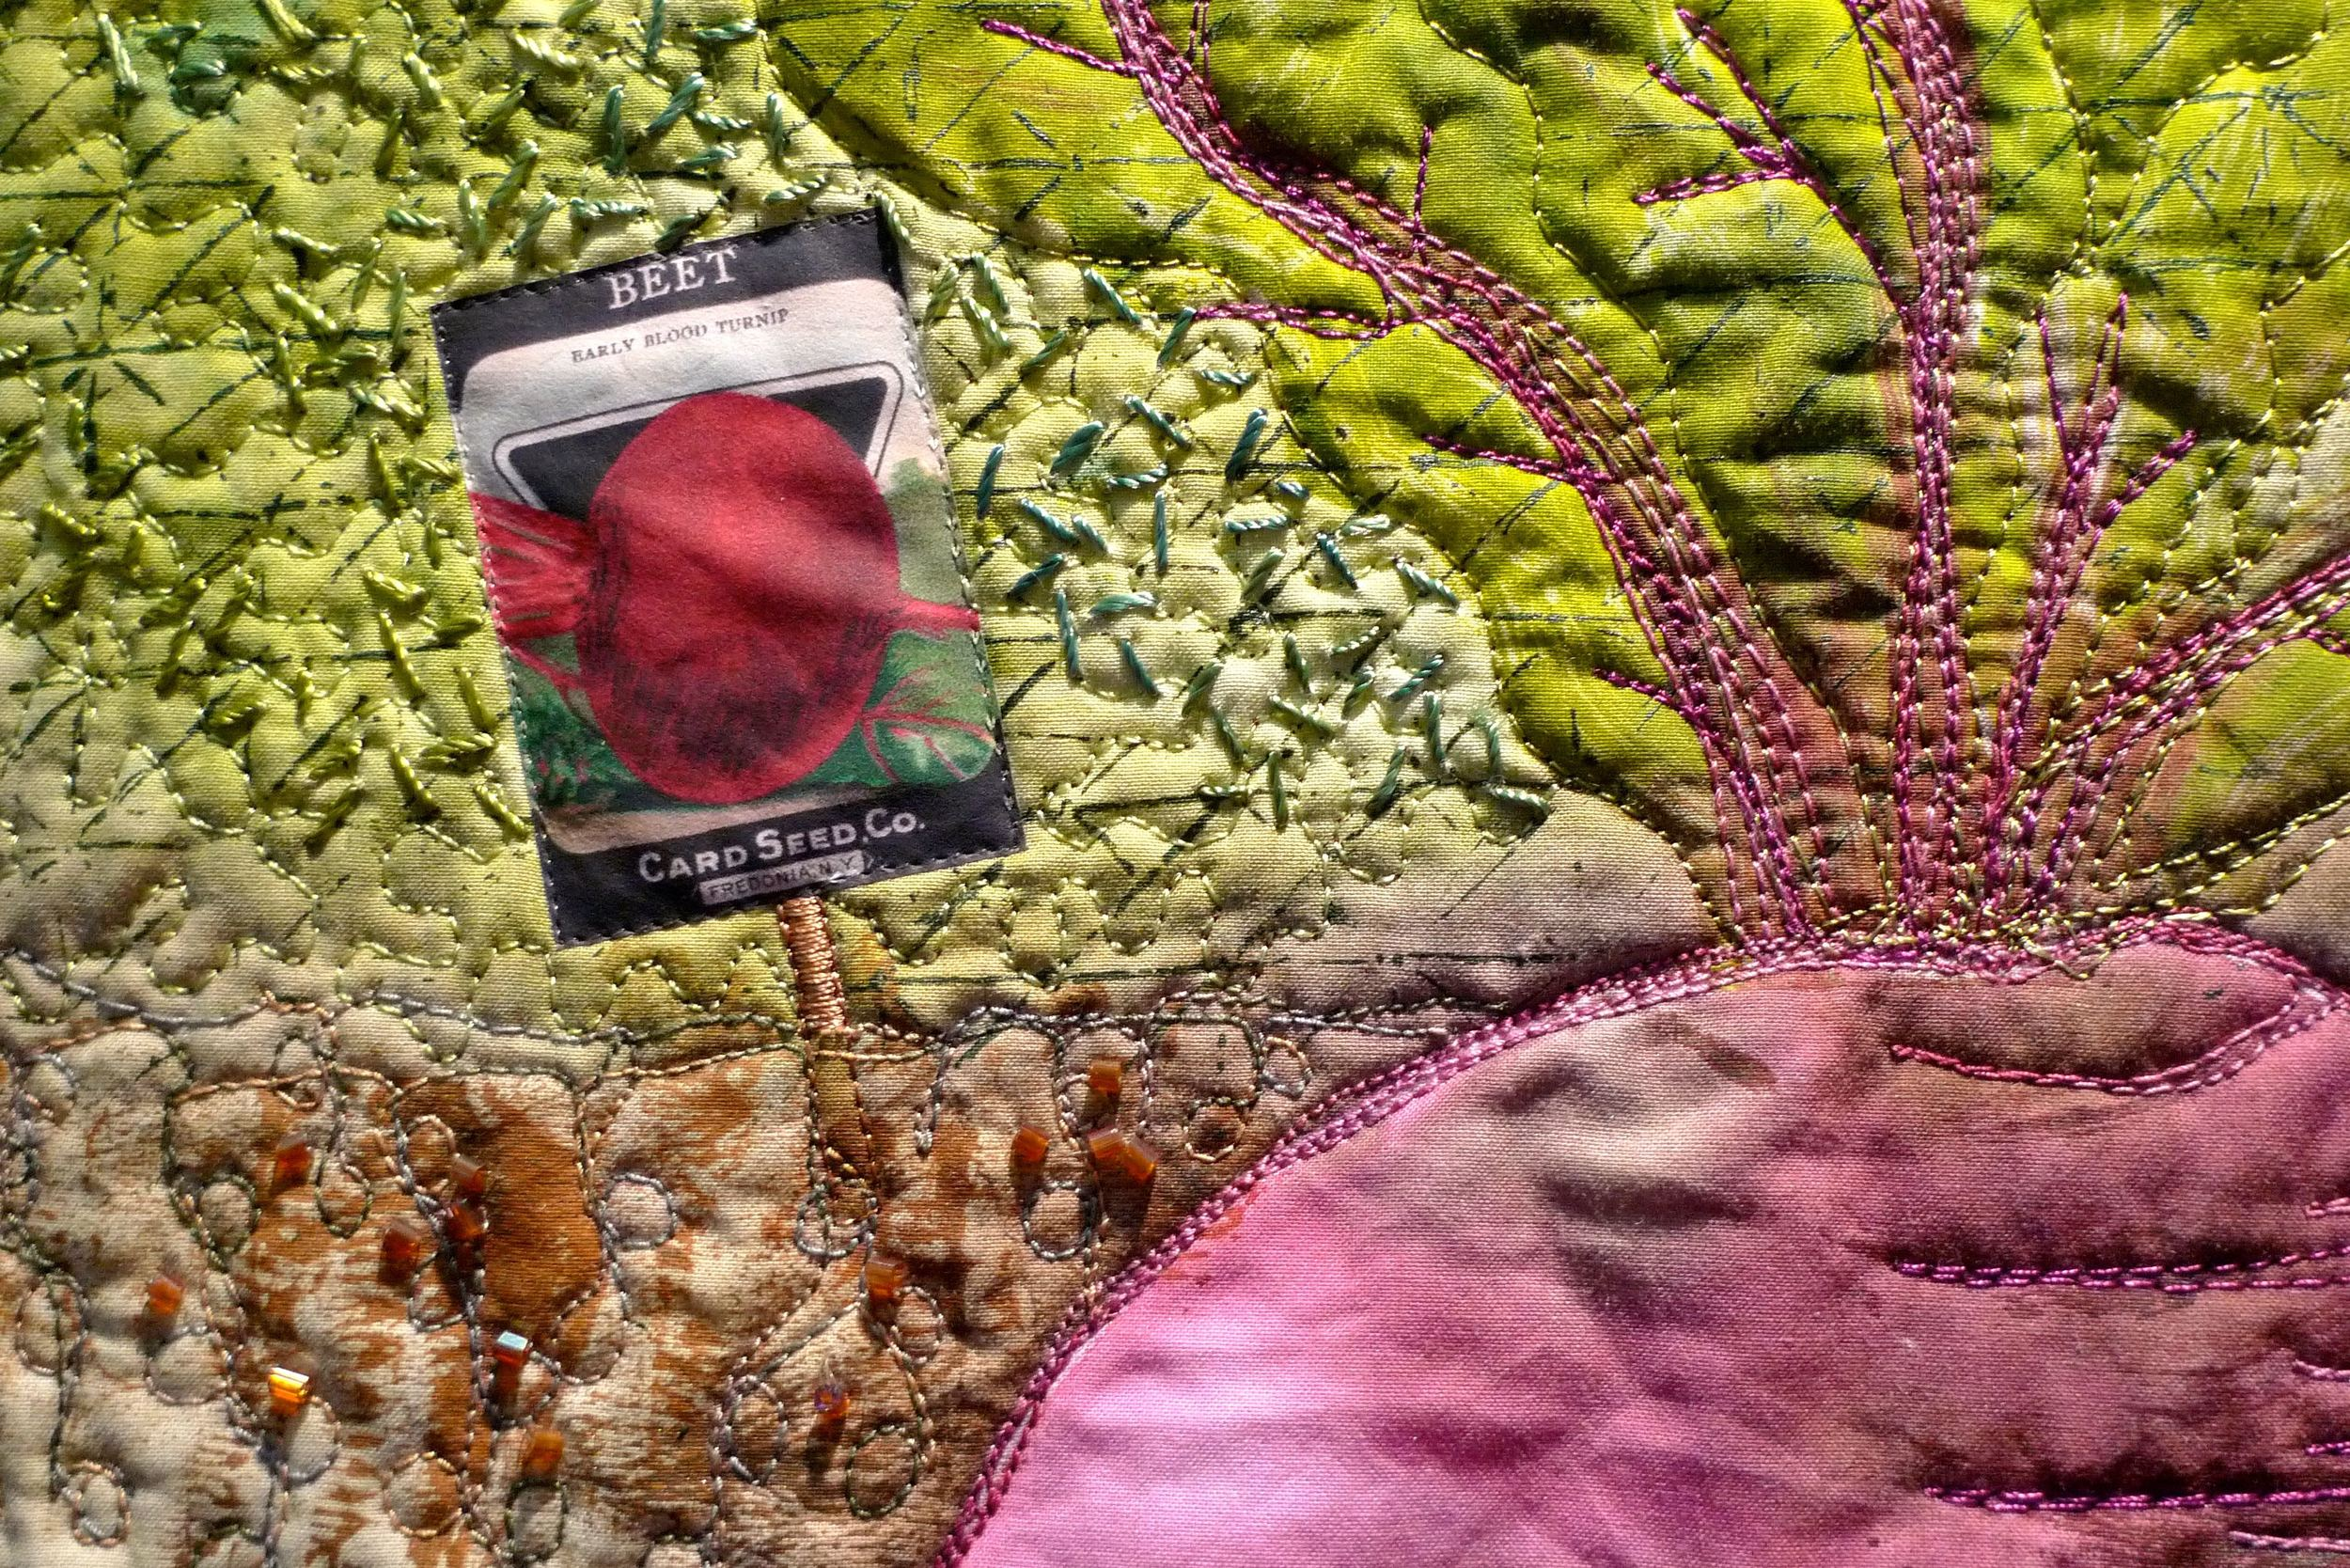 A closer look at the beetroot and the seed packet